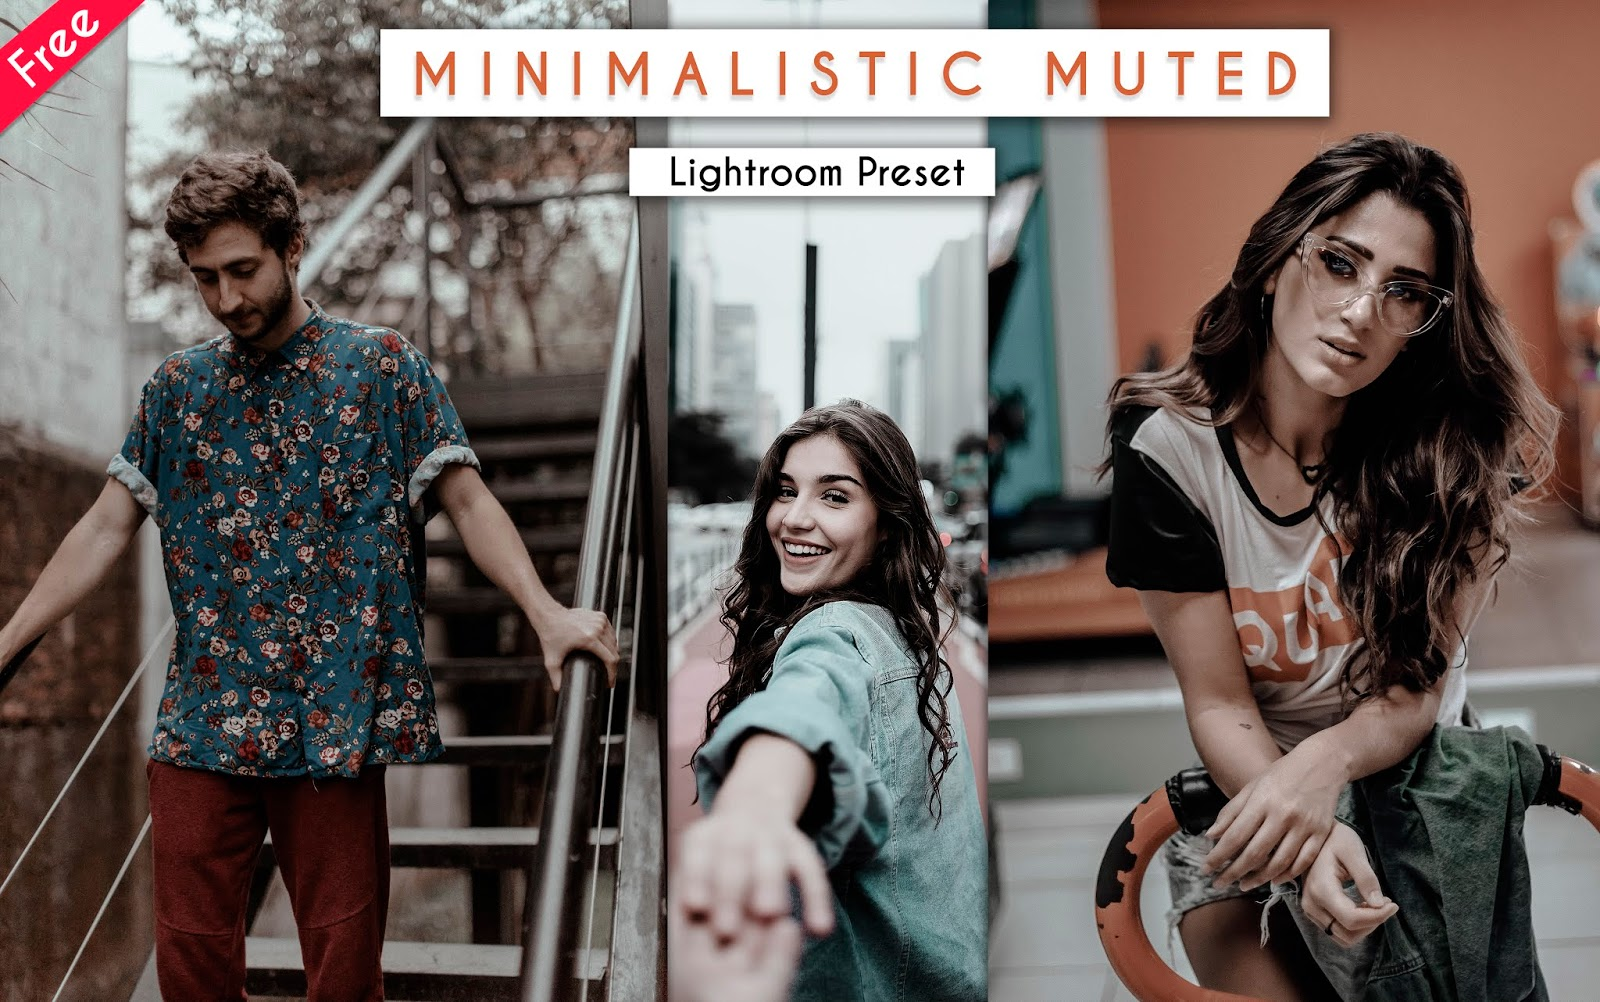 Download Minimalistic Muted Lightroom Preset for Free | How to Edit Your Photos Like Minimalistic Muted Effect in Lightroom